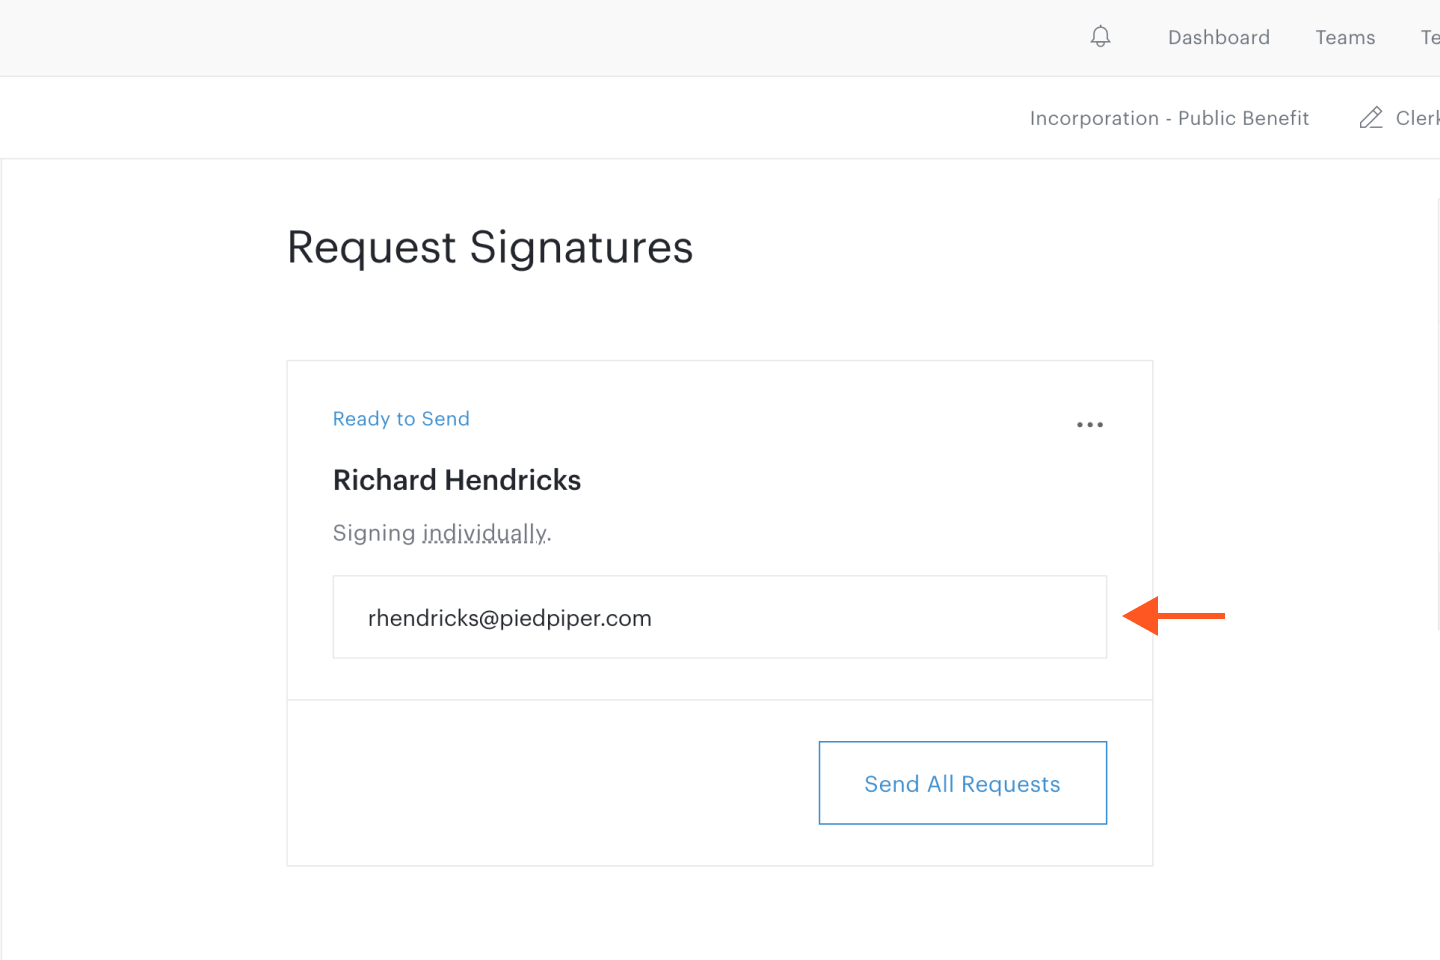 Email address text field in Request Signatures step in document set workflow